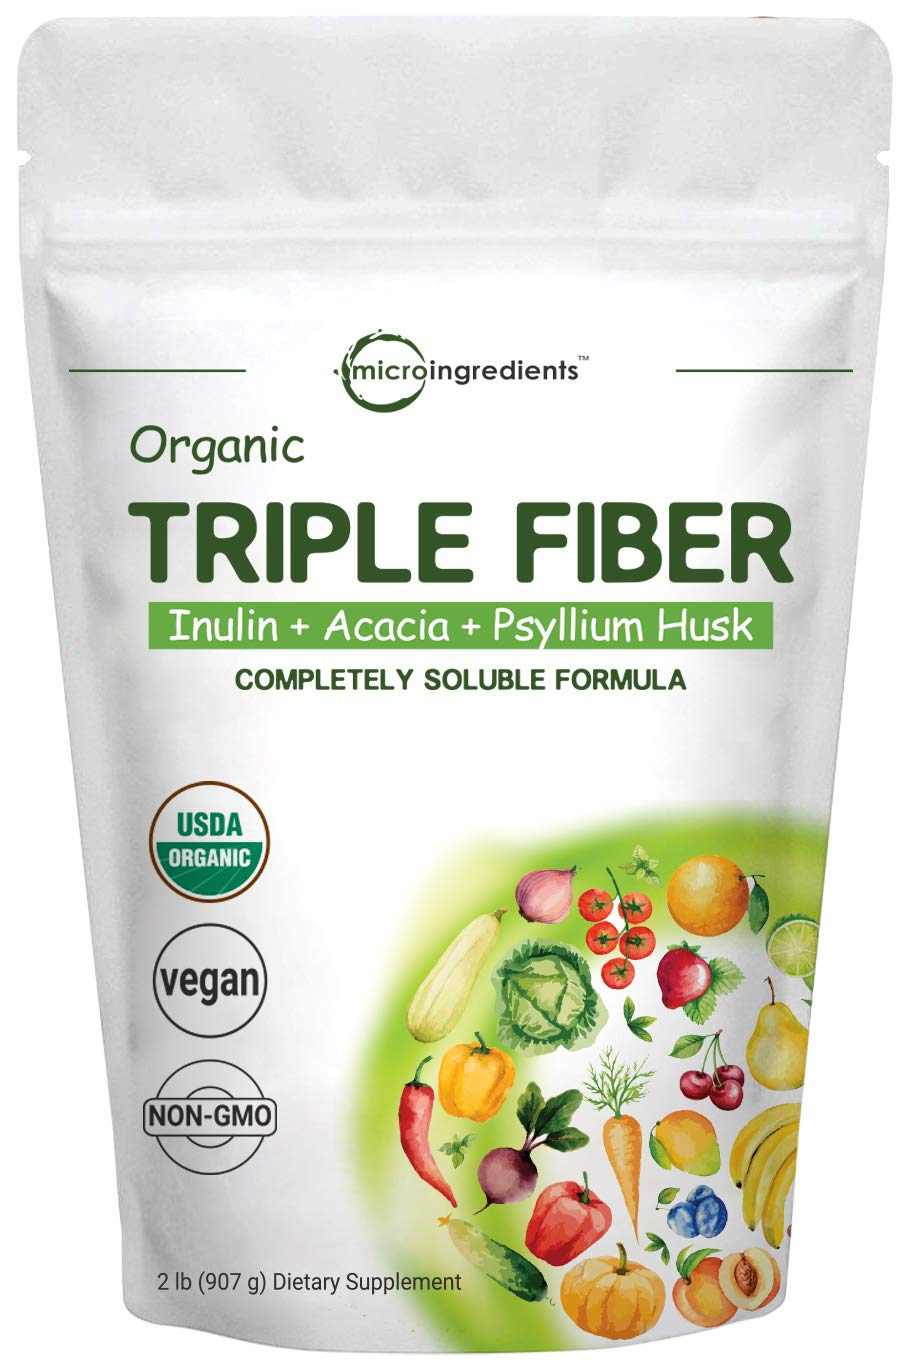 Organic Triple Prebiotic Dietary Fiber Supplement Powder for Digestive Health, 2 Pounds, 32 Ounce, All Natural, Clear, Water Soluble and Taste Free, No GMOs and Vegan Friendly